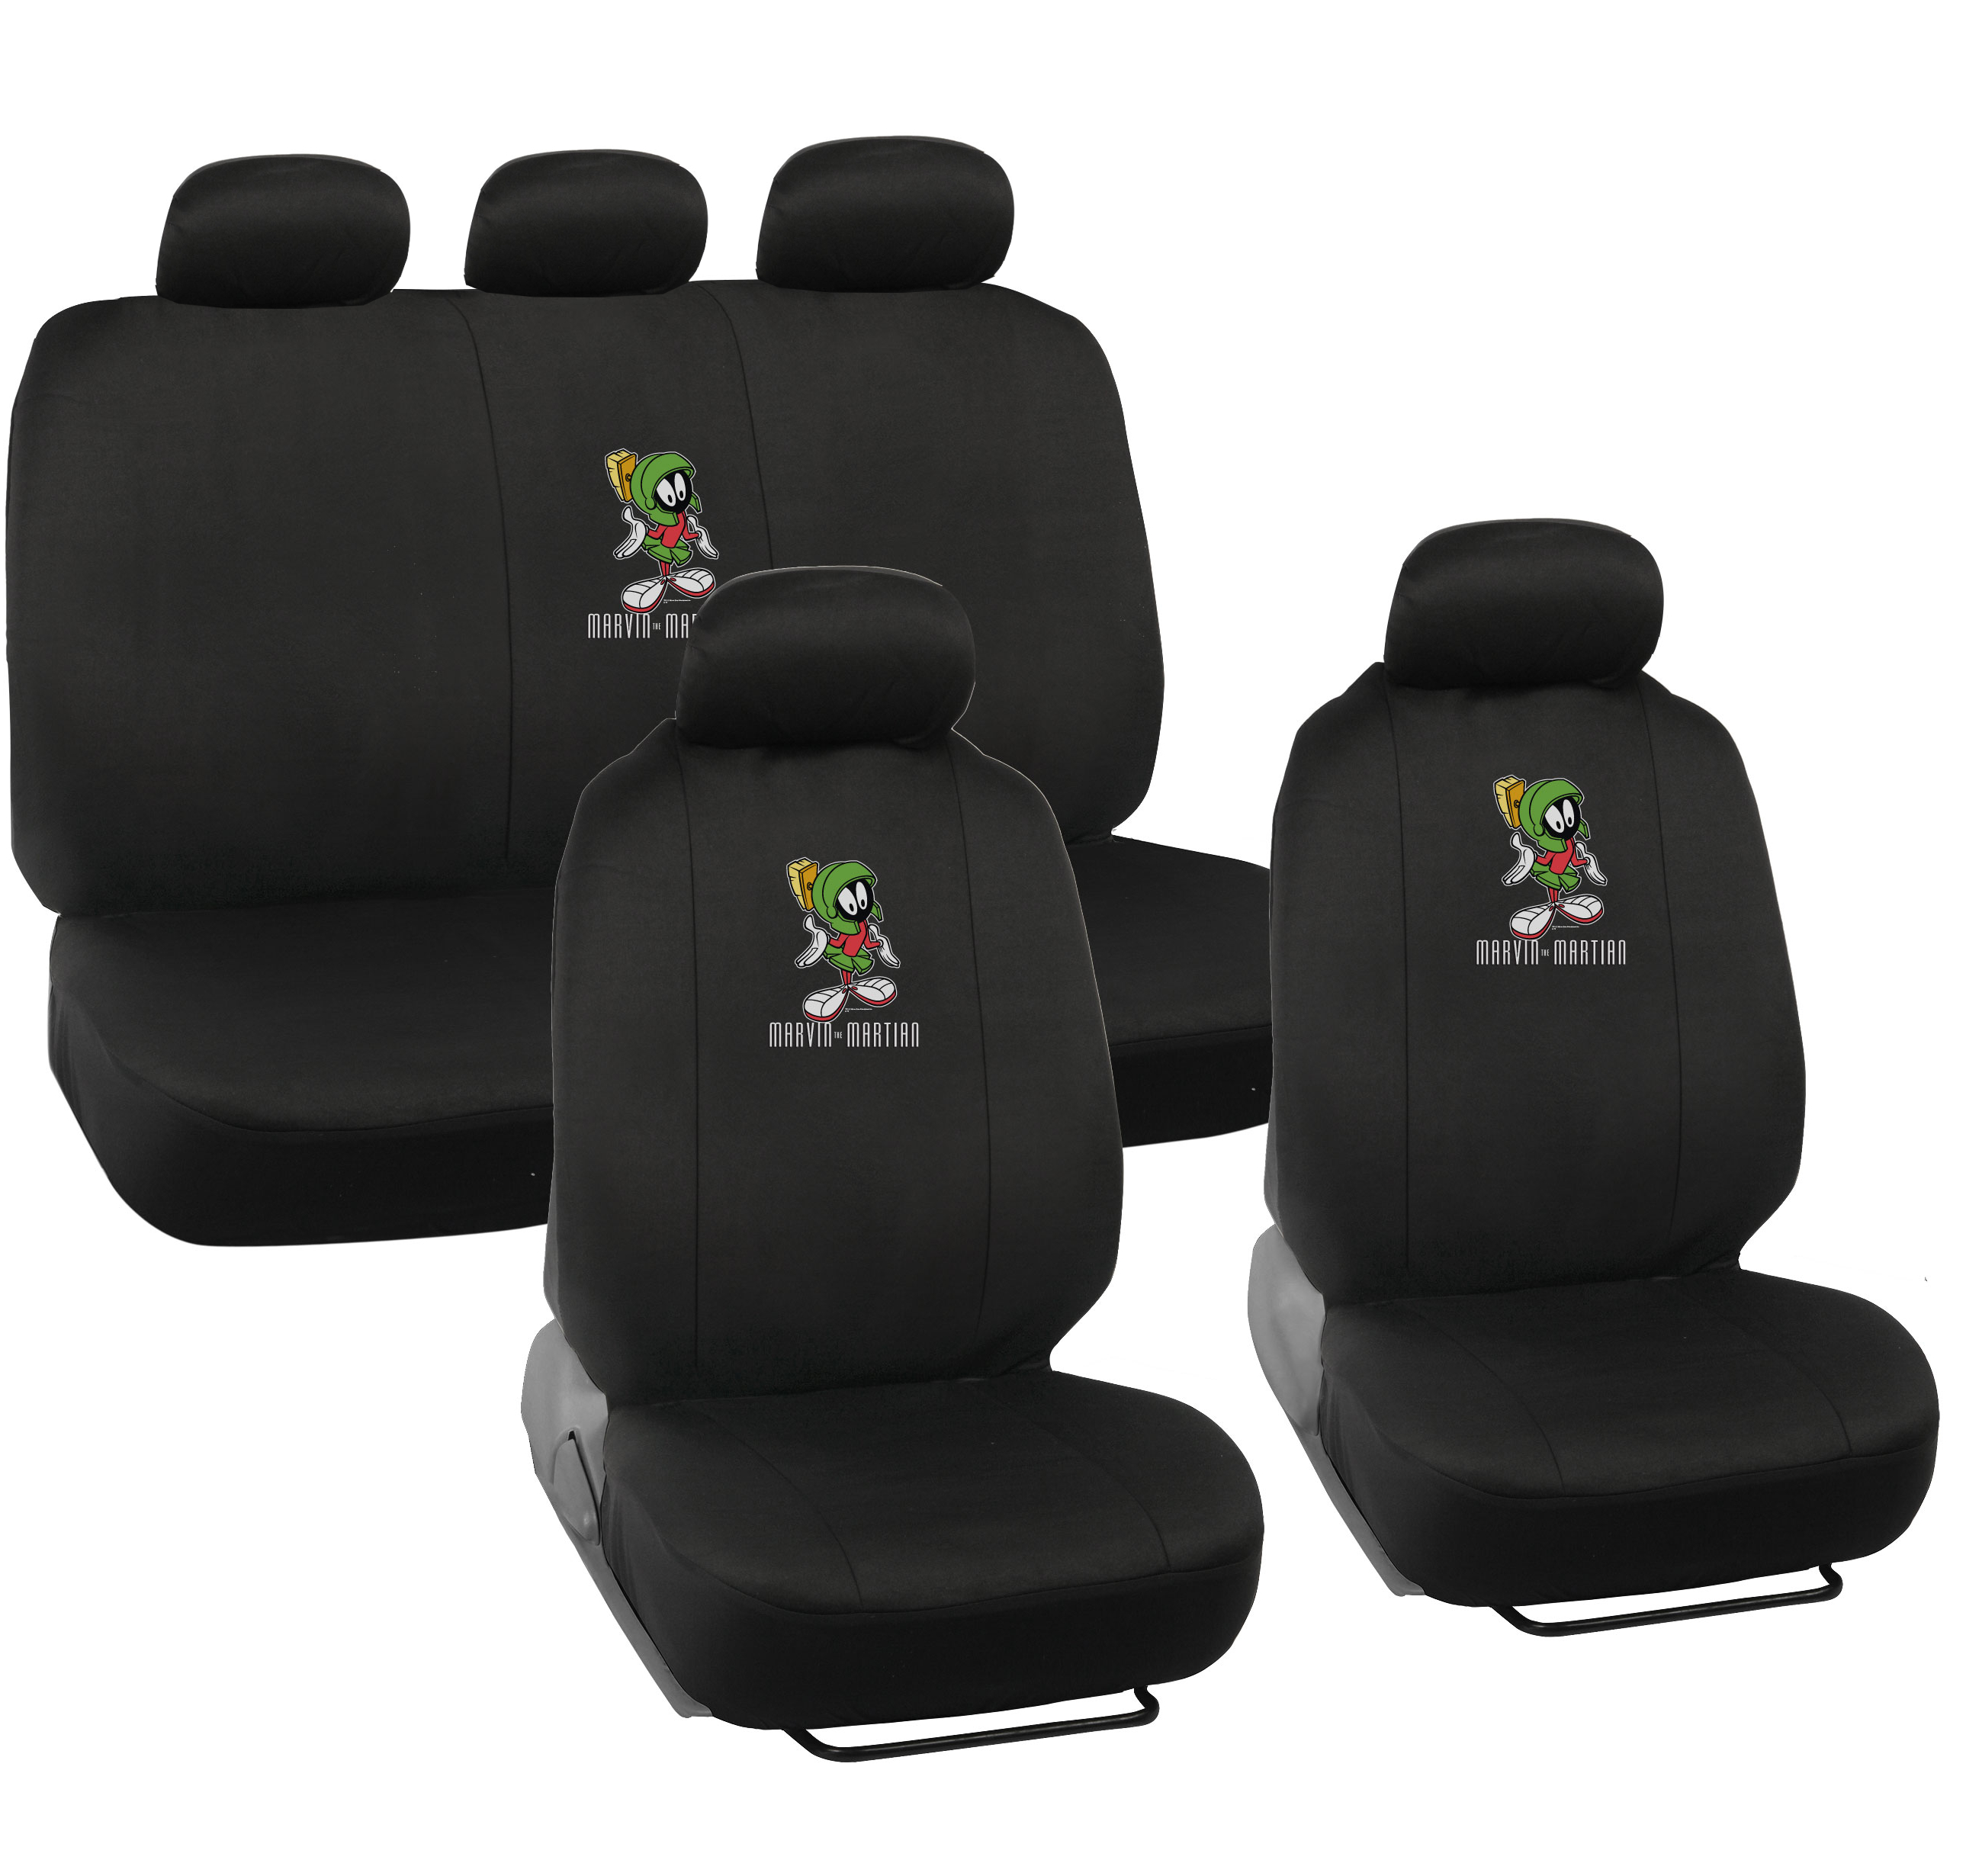 Marvin Martian Car Seat Covers